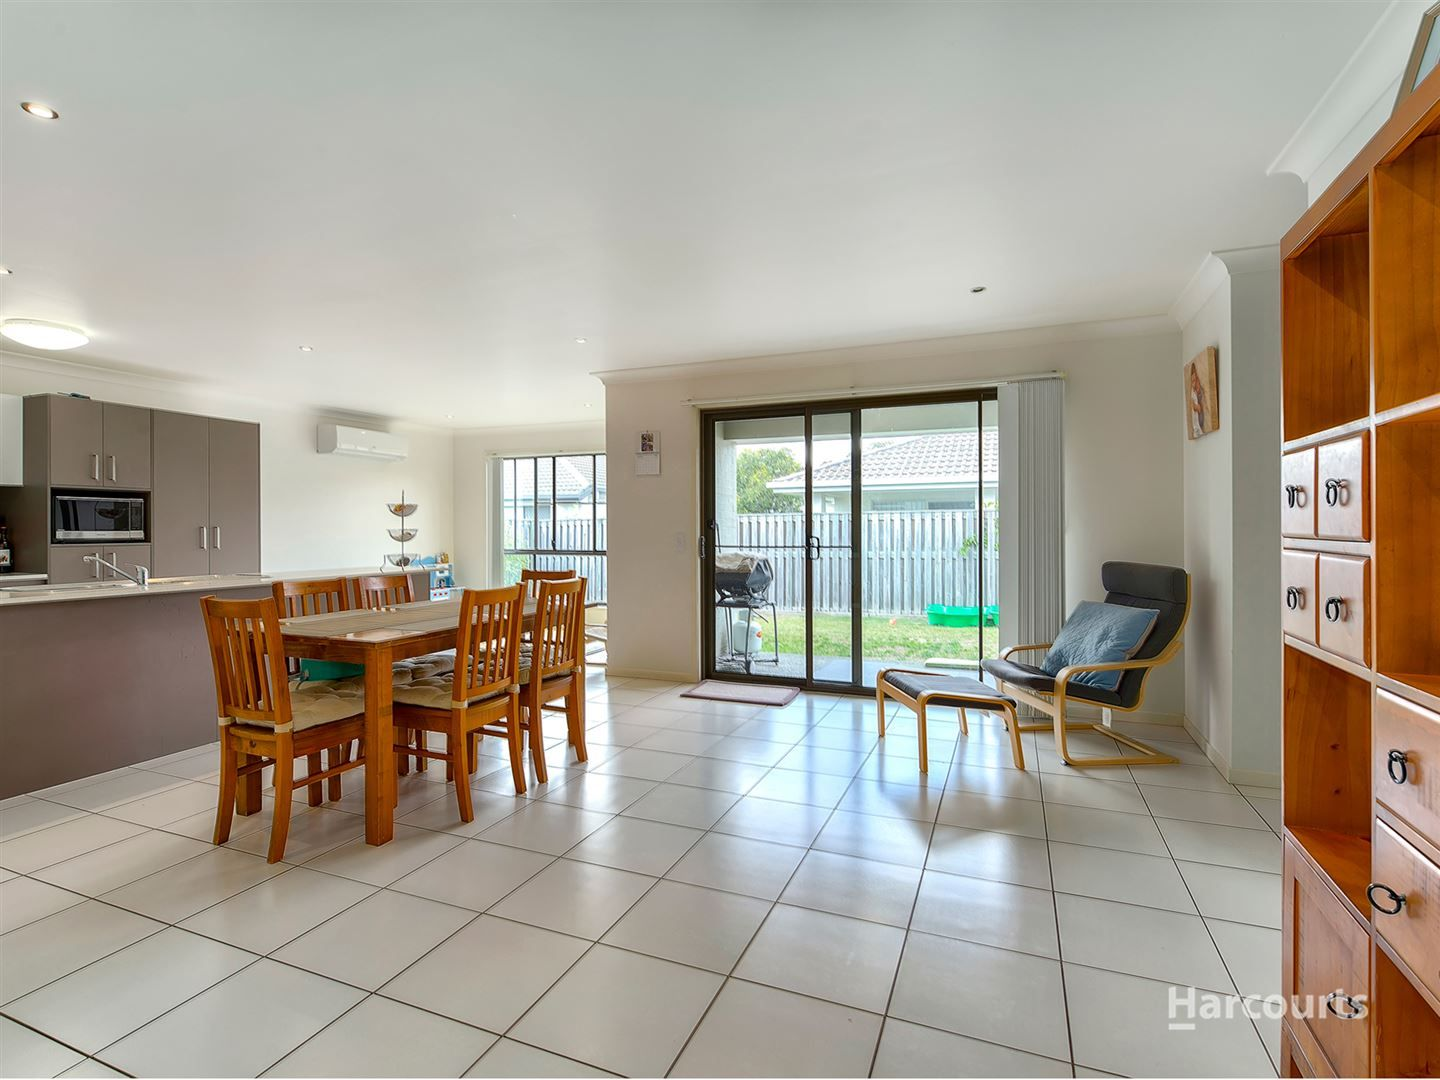 6 Sackville Close, Fitzgibbon QLD 4018, Image 2